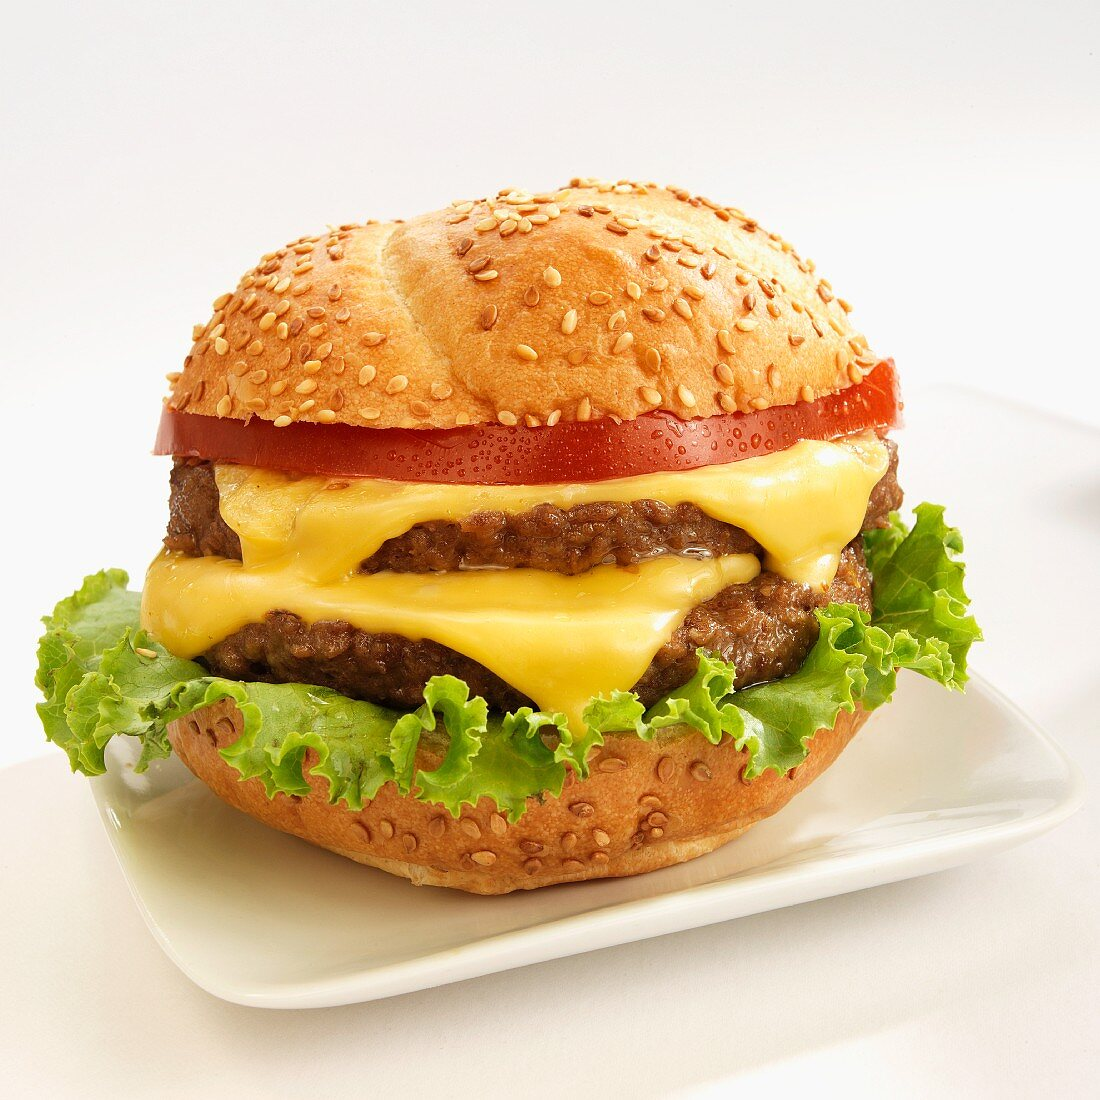 A double cheese burger with tomatoes on sesame seeds bun